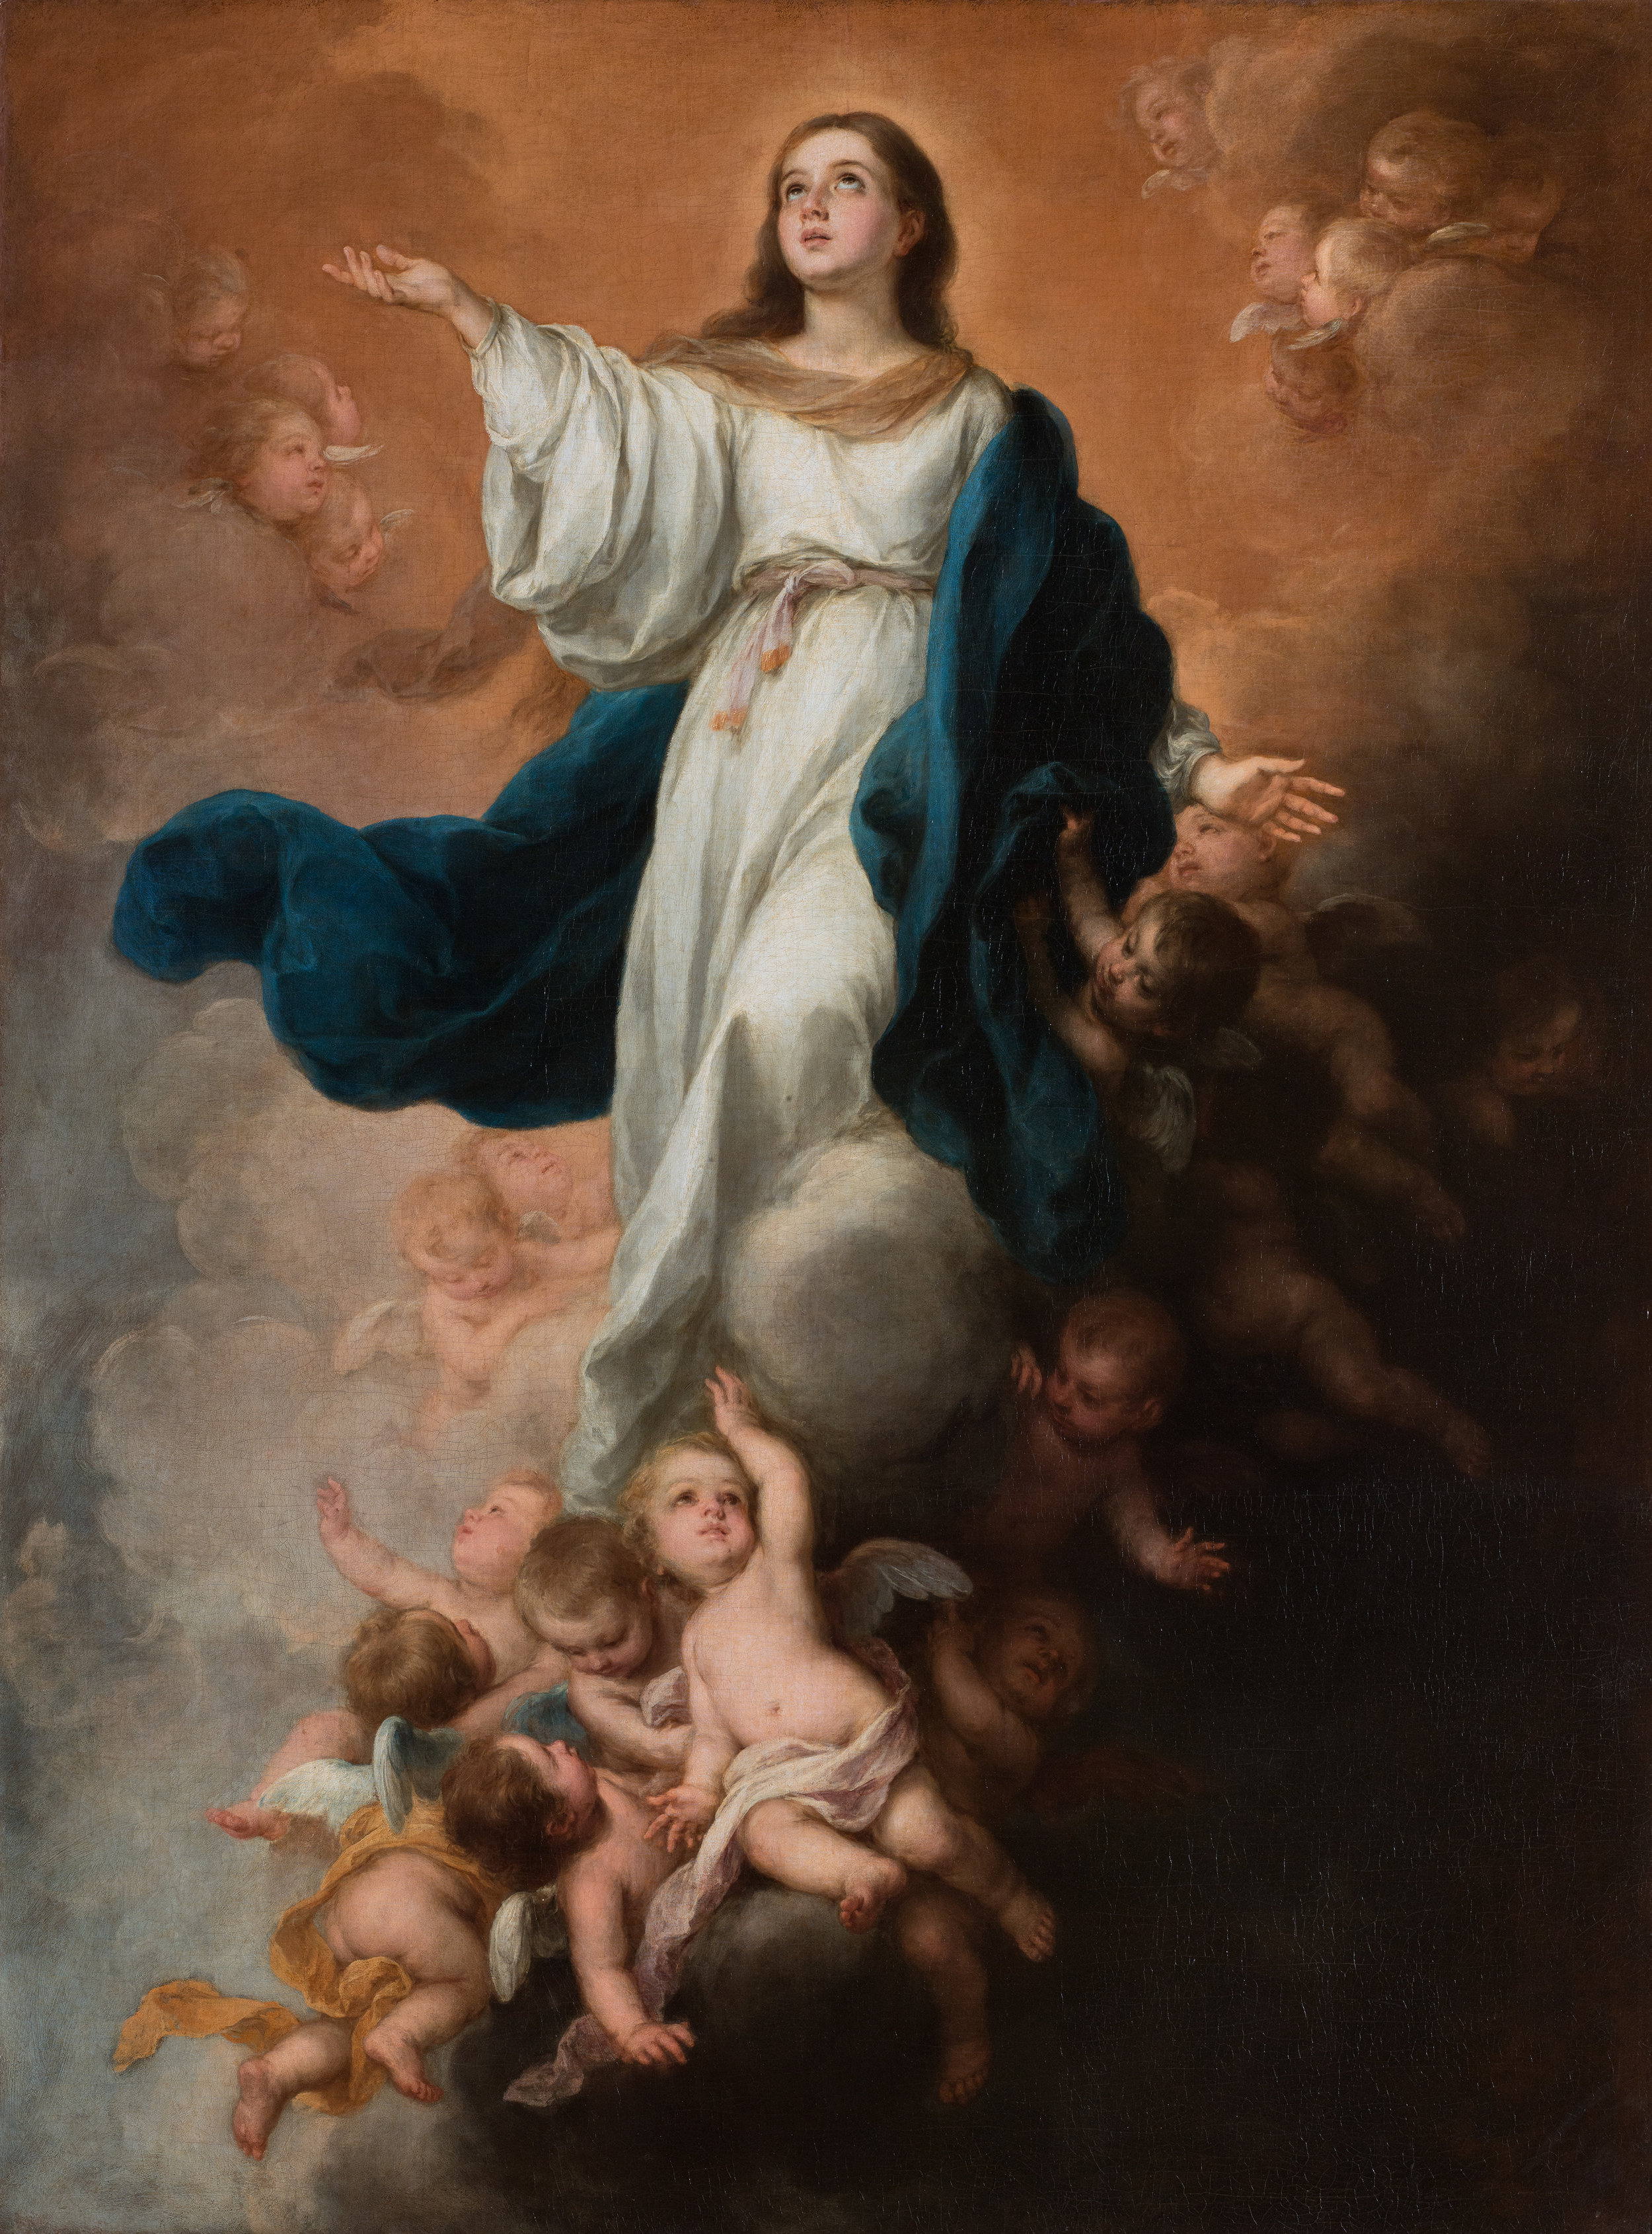 Assumption of the Virgin painted by Bartolome Esteban Murillo, 1670s